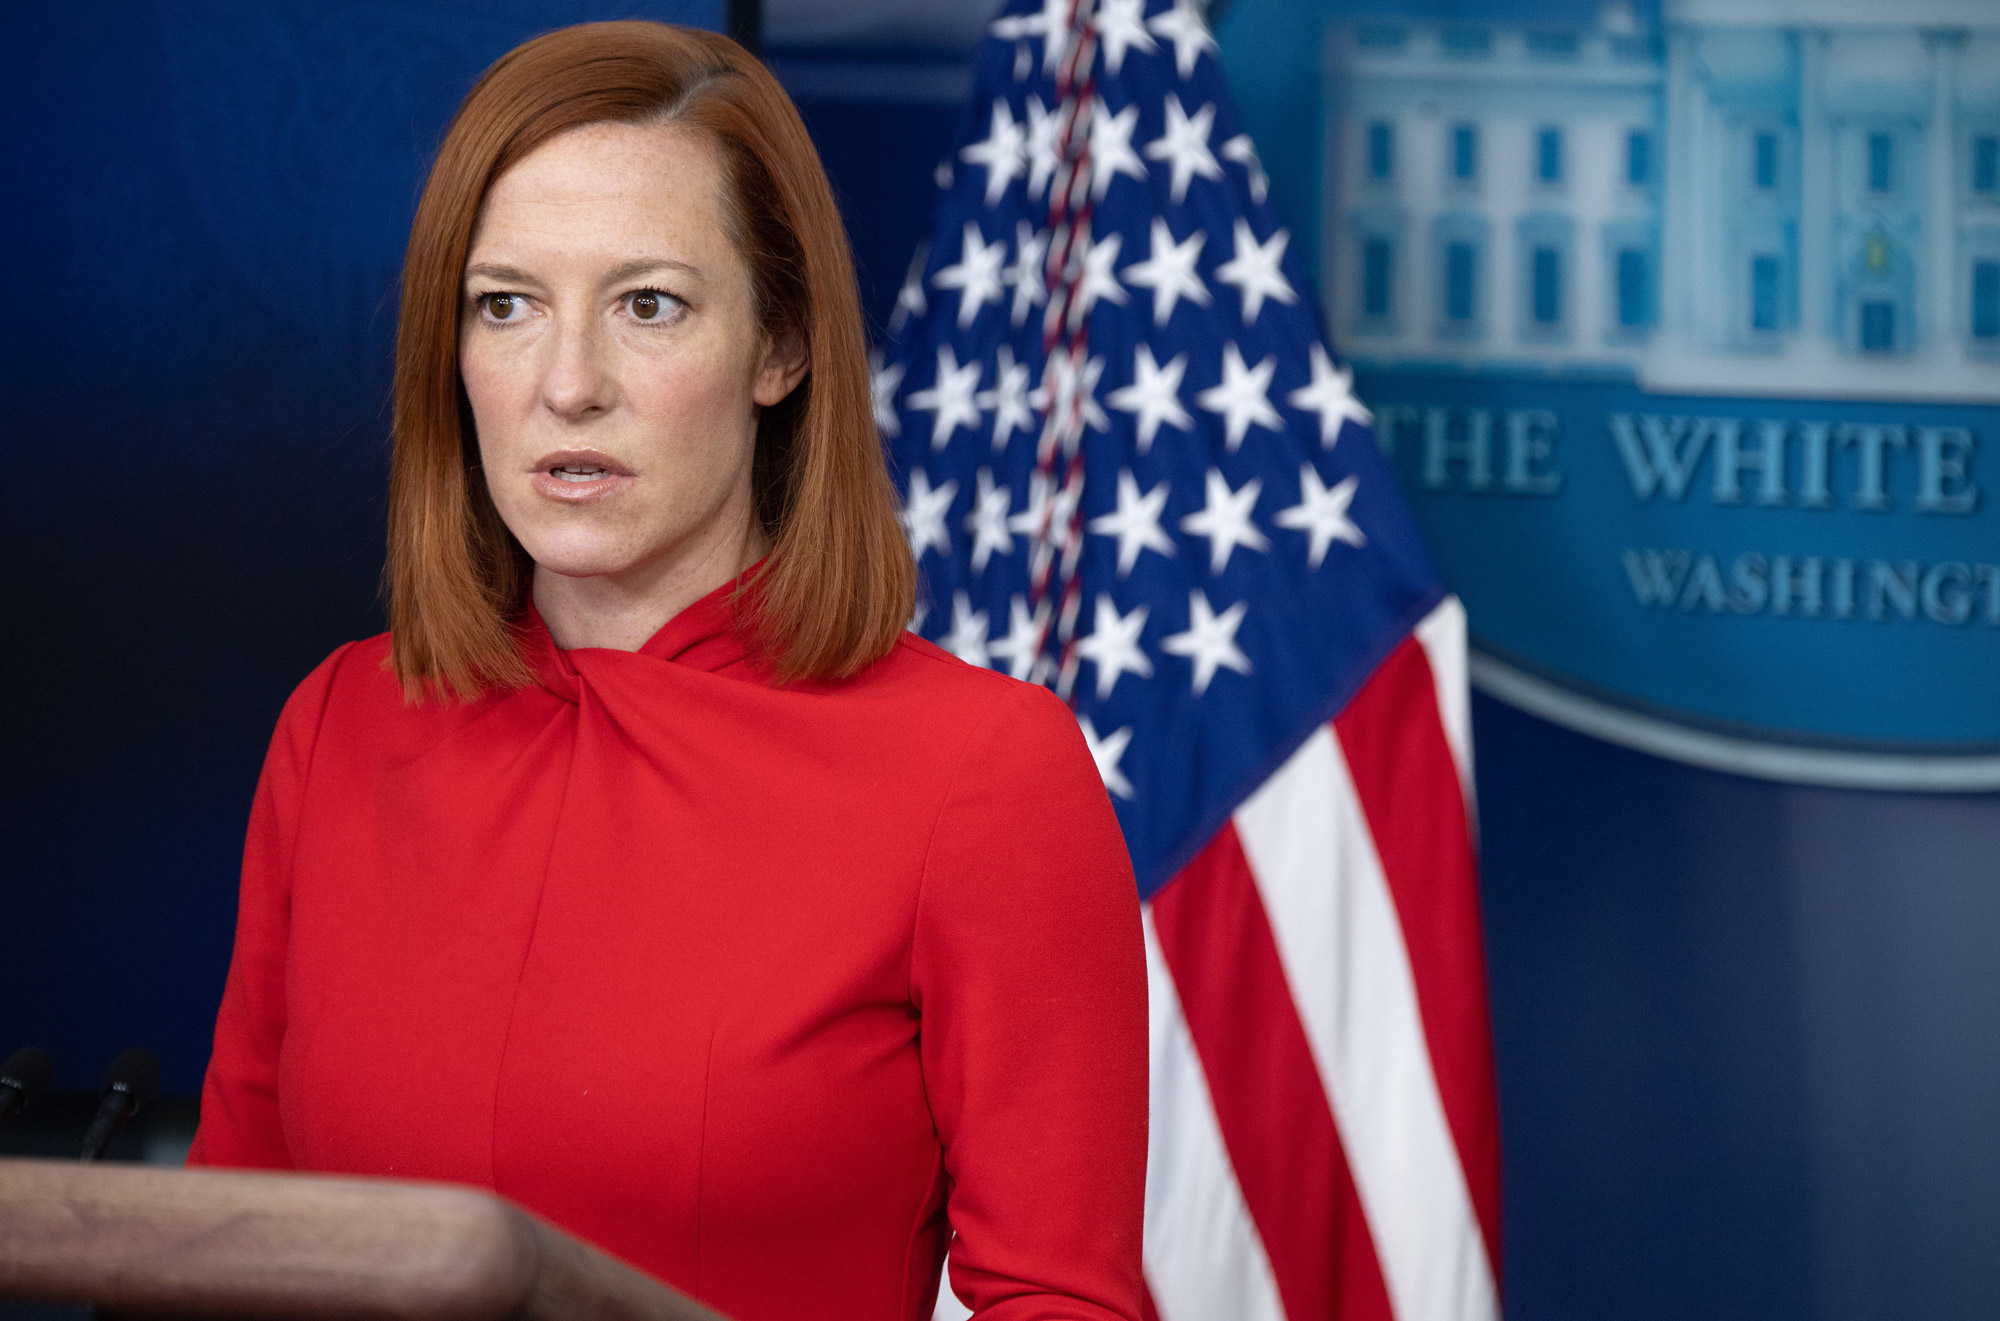 White House Press Secretary Jen Psaki speaks during a press briefing on February 17 in the Brady Briefing Room of the White House in Washington, DC.